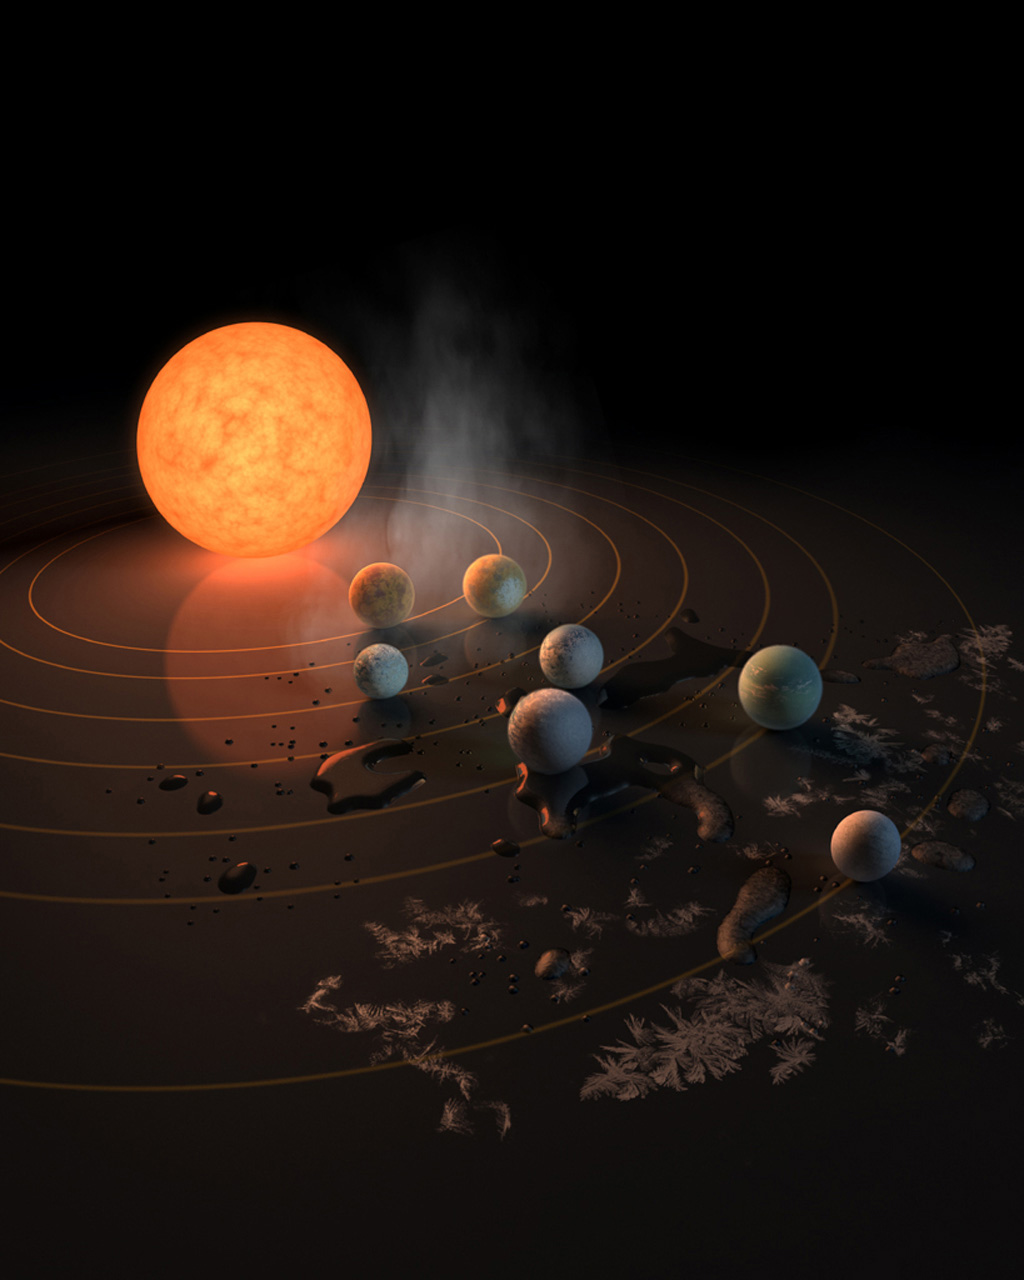 NASA Reveals Their Discovery of Seven Exoplanets Around Dwarf Star